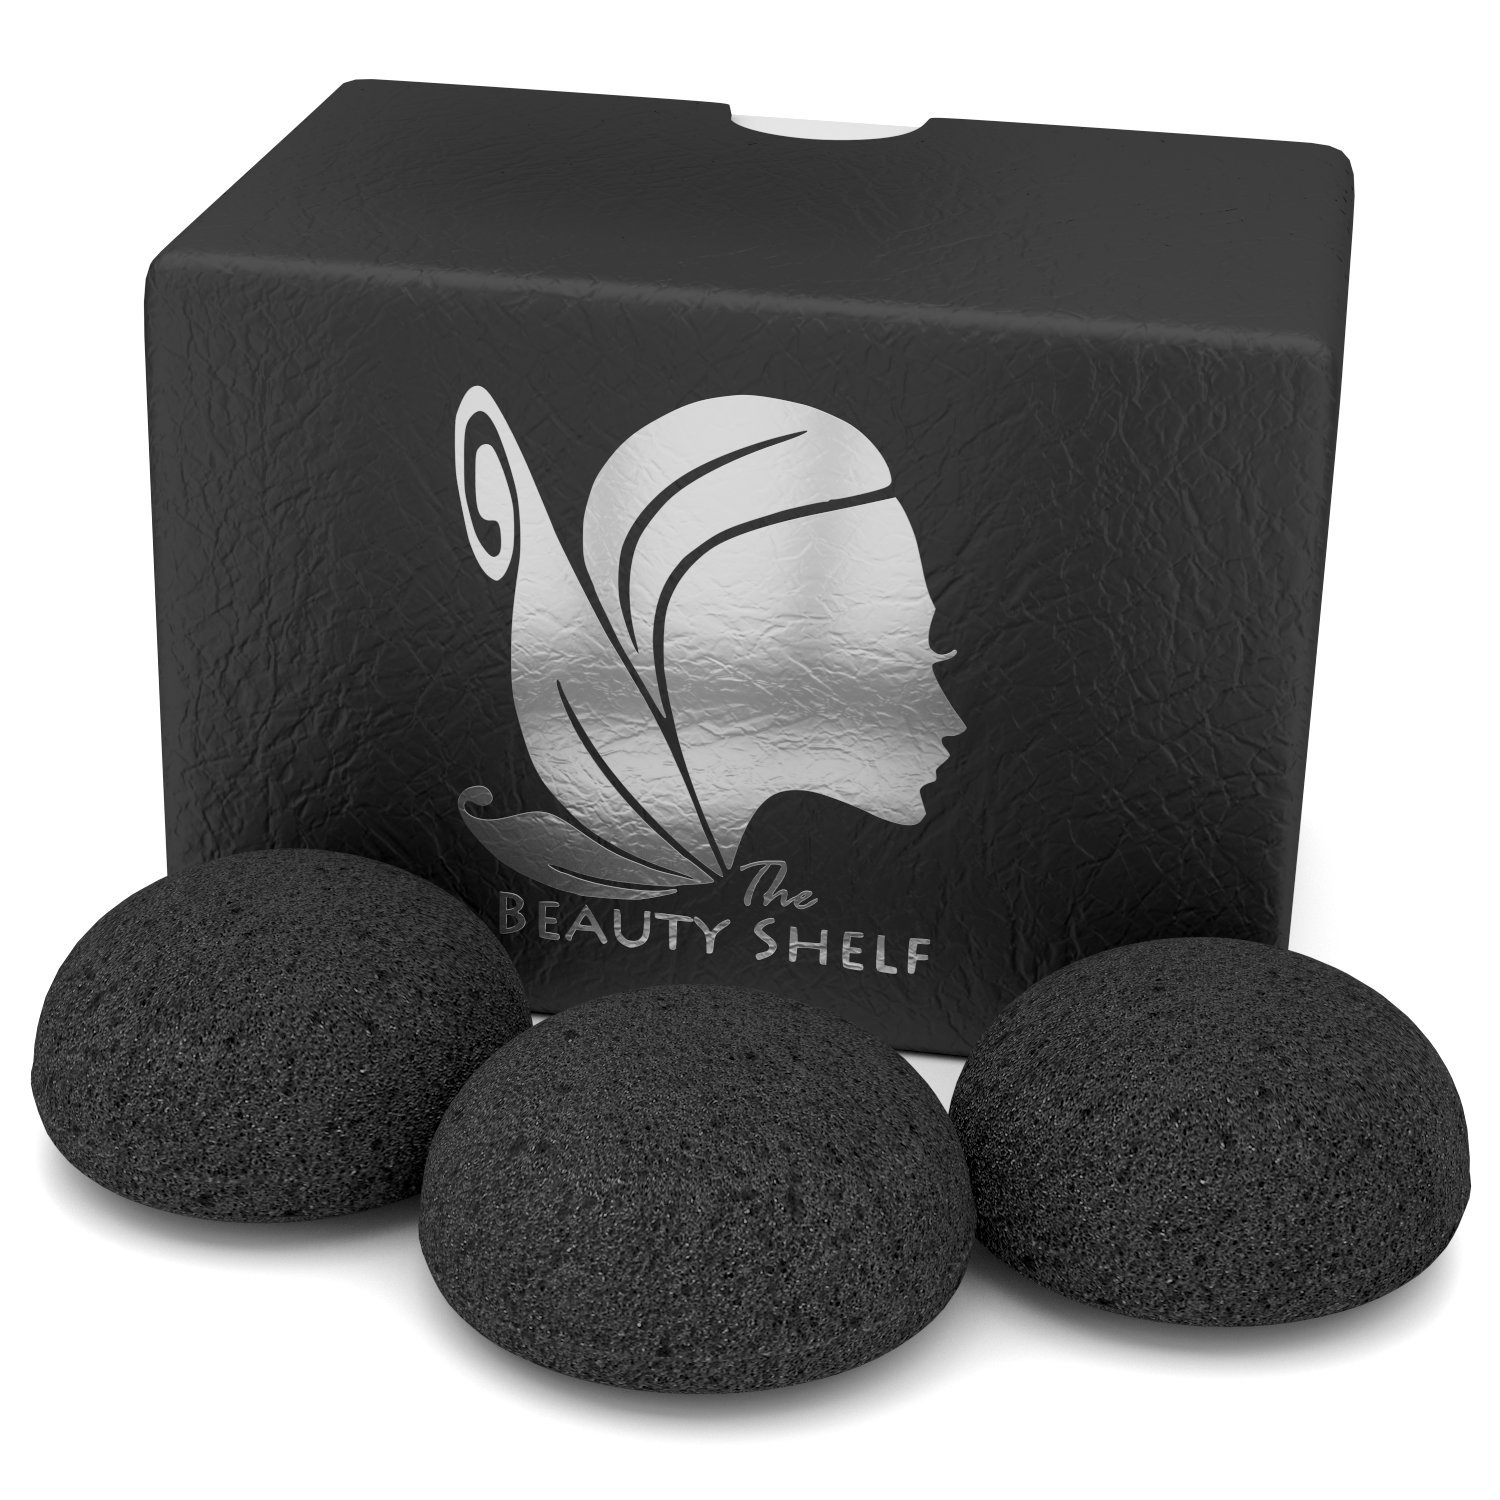 Konjac Sponge (3 Pack) Activated Bamboo Charcoal. Facial Cleansing & Exfoliating Beauty Sponges